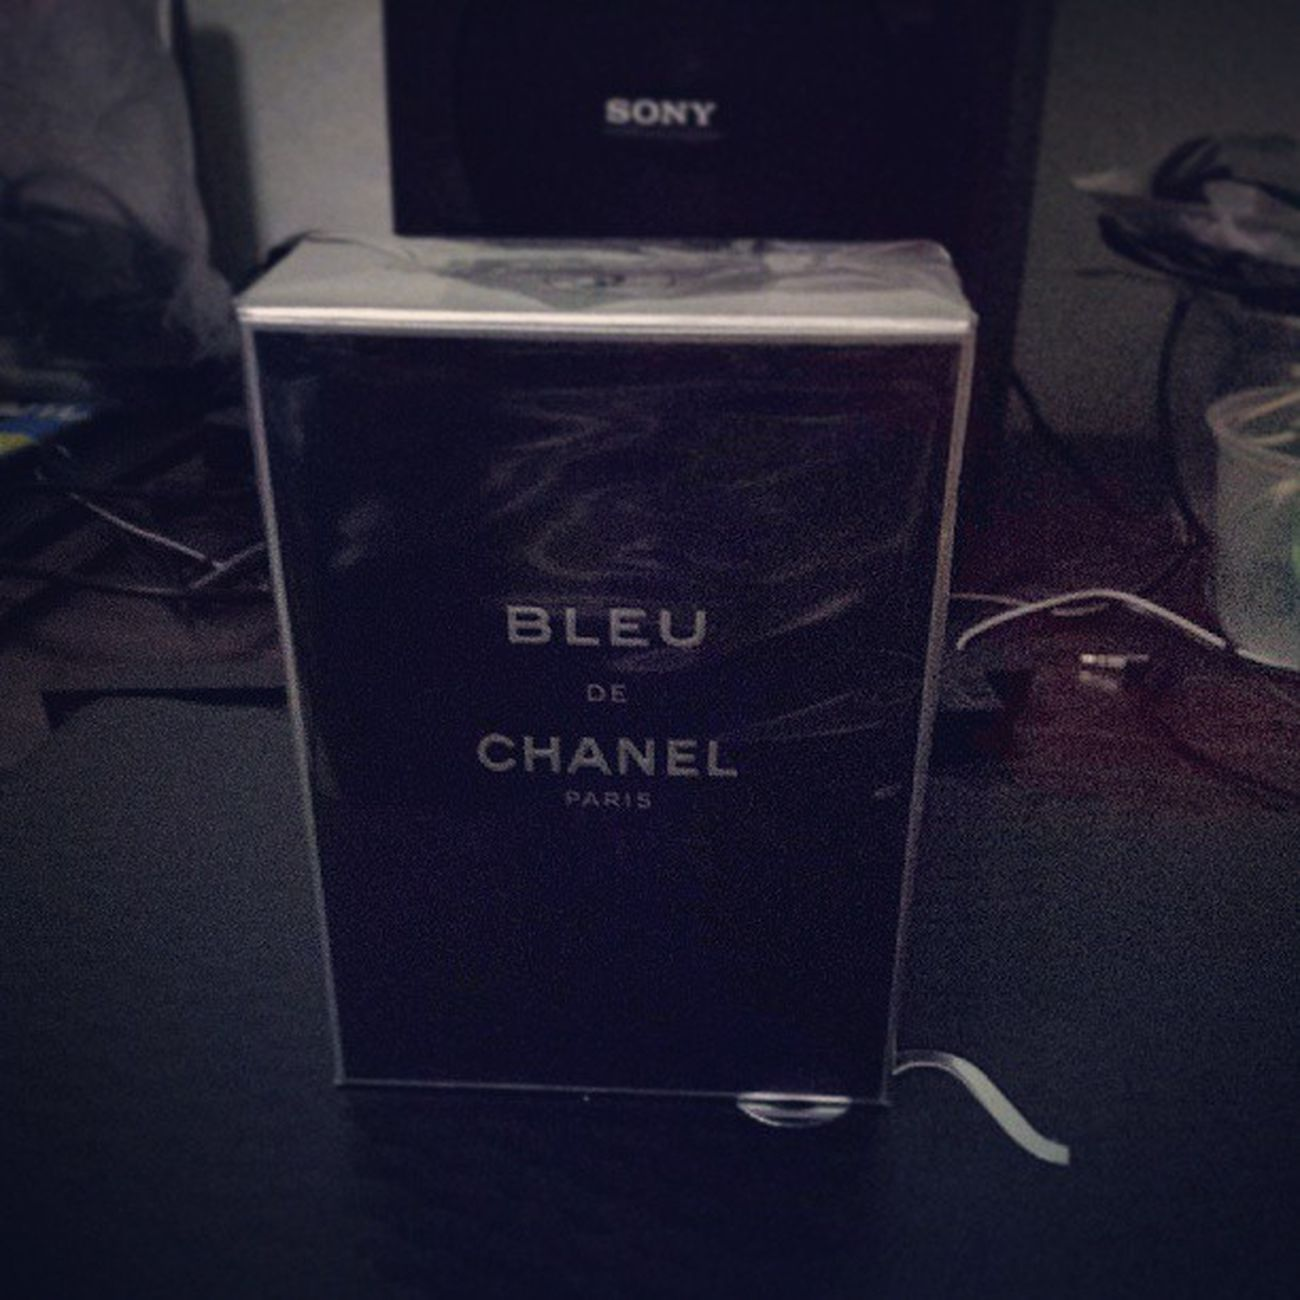 Adding on to my Ralph Lauren and Burberry EDT, welcome BLEU DE CHANEL as my new EDT! :D Chanel Bleudechanel Edt Cologne